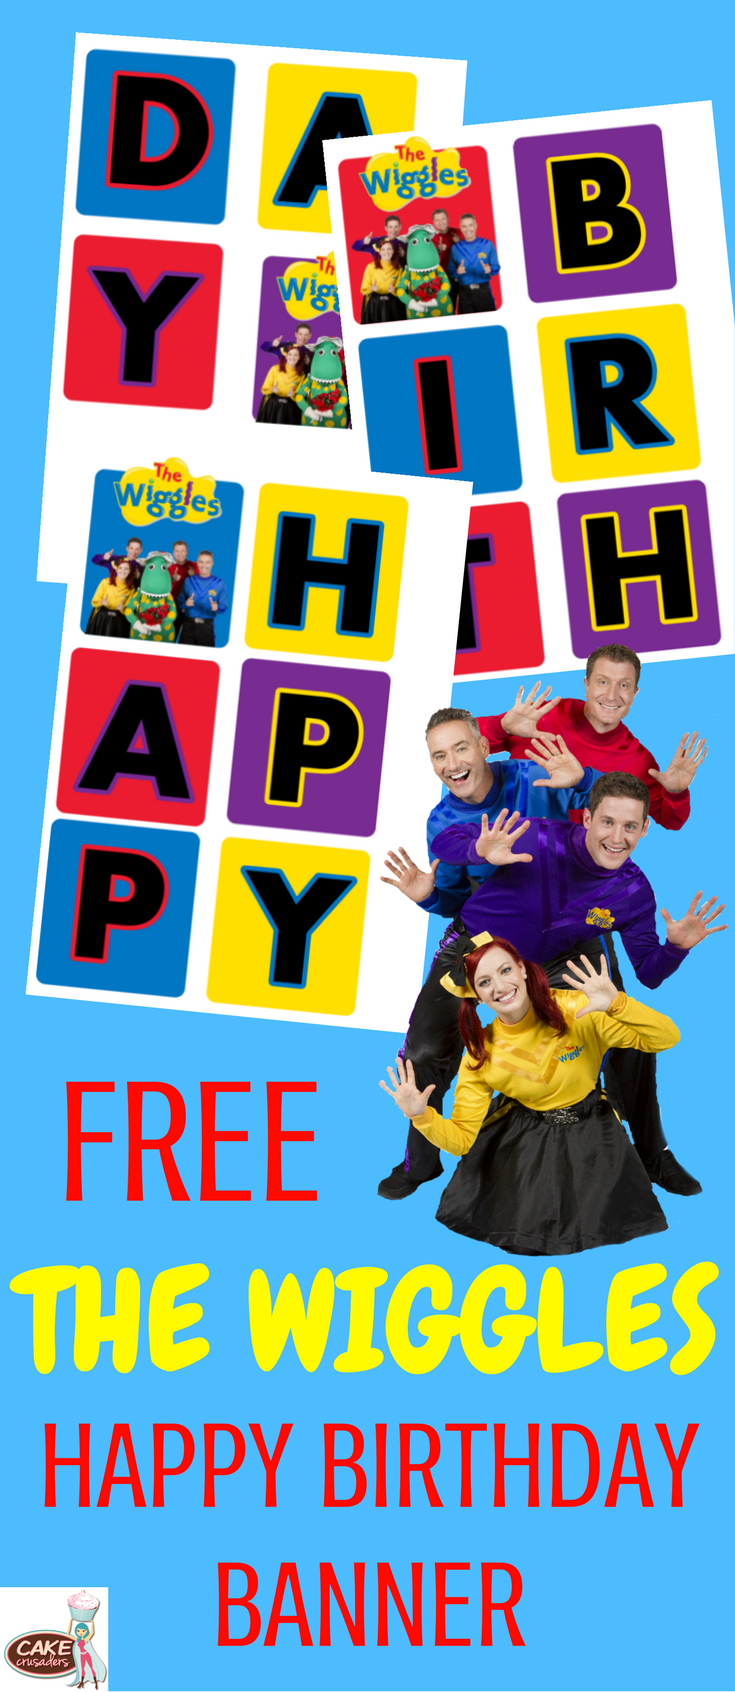 The Wiggles Happy Birthday Banner The Wiggles Birthday Party